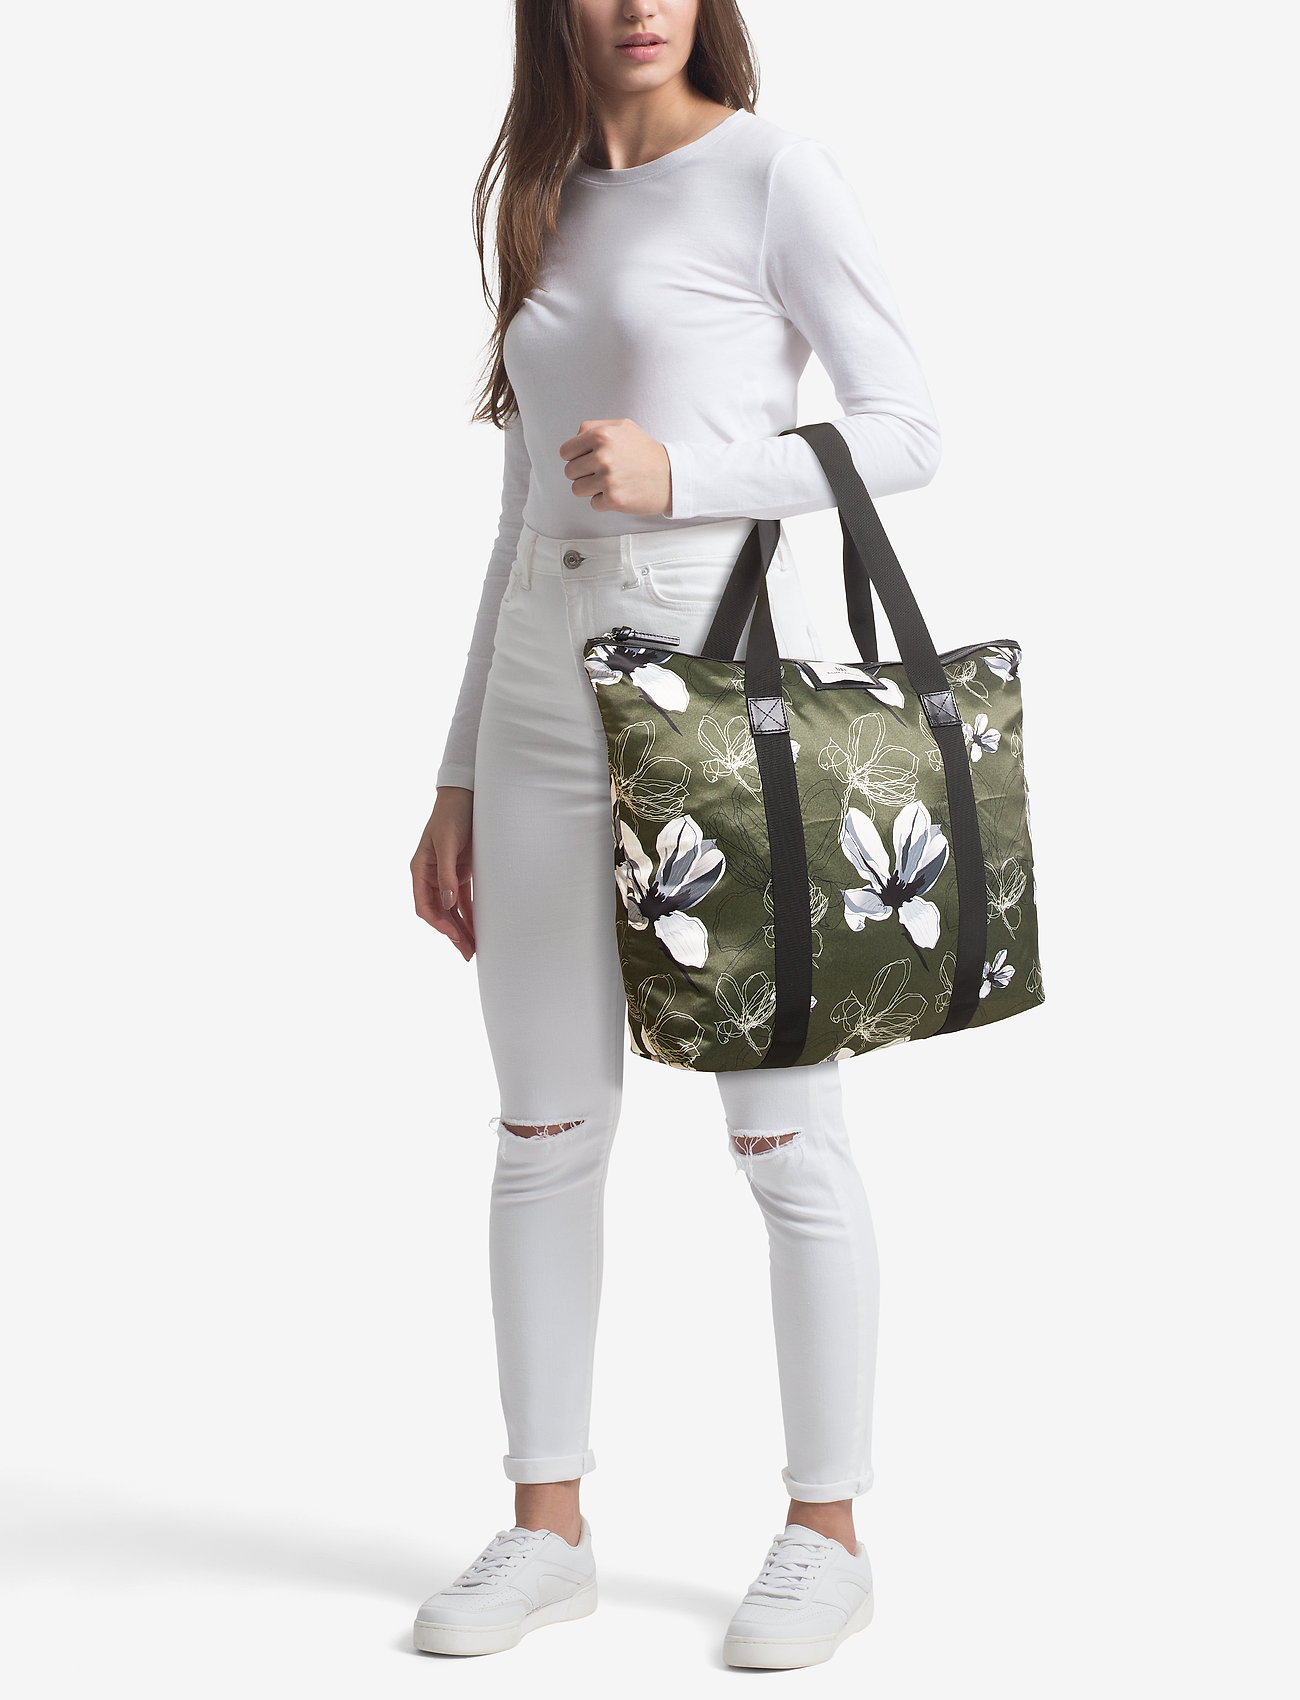 DAY et Day Gweneth P Magnolia Bag   Shoppers